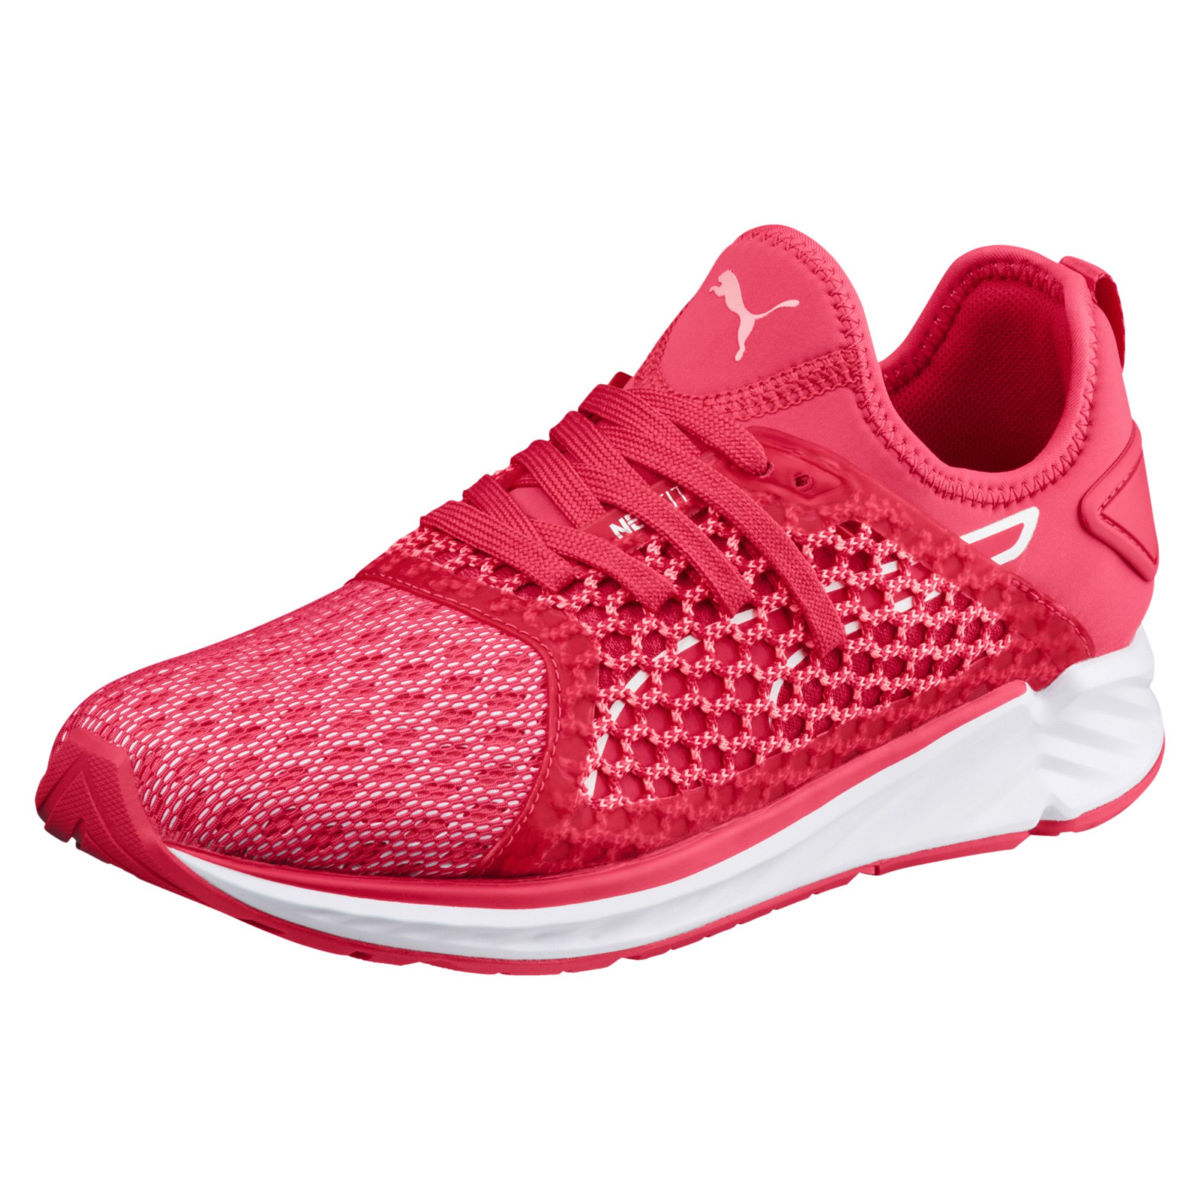 Chaussures Femme Puma Ignite 4 Netfit - UK 6 pink-fluopeach